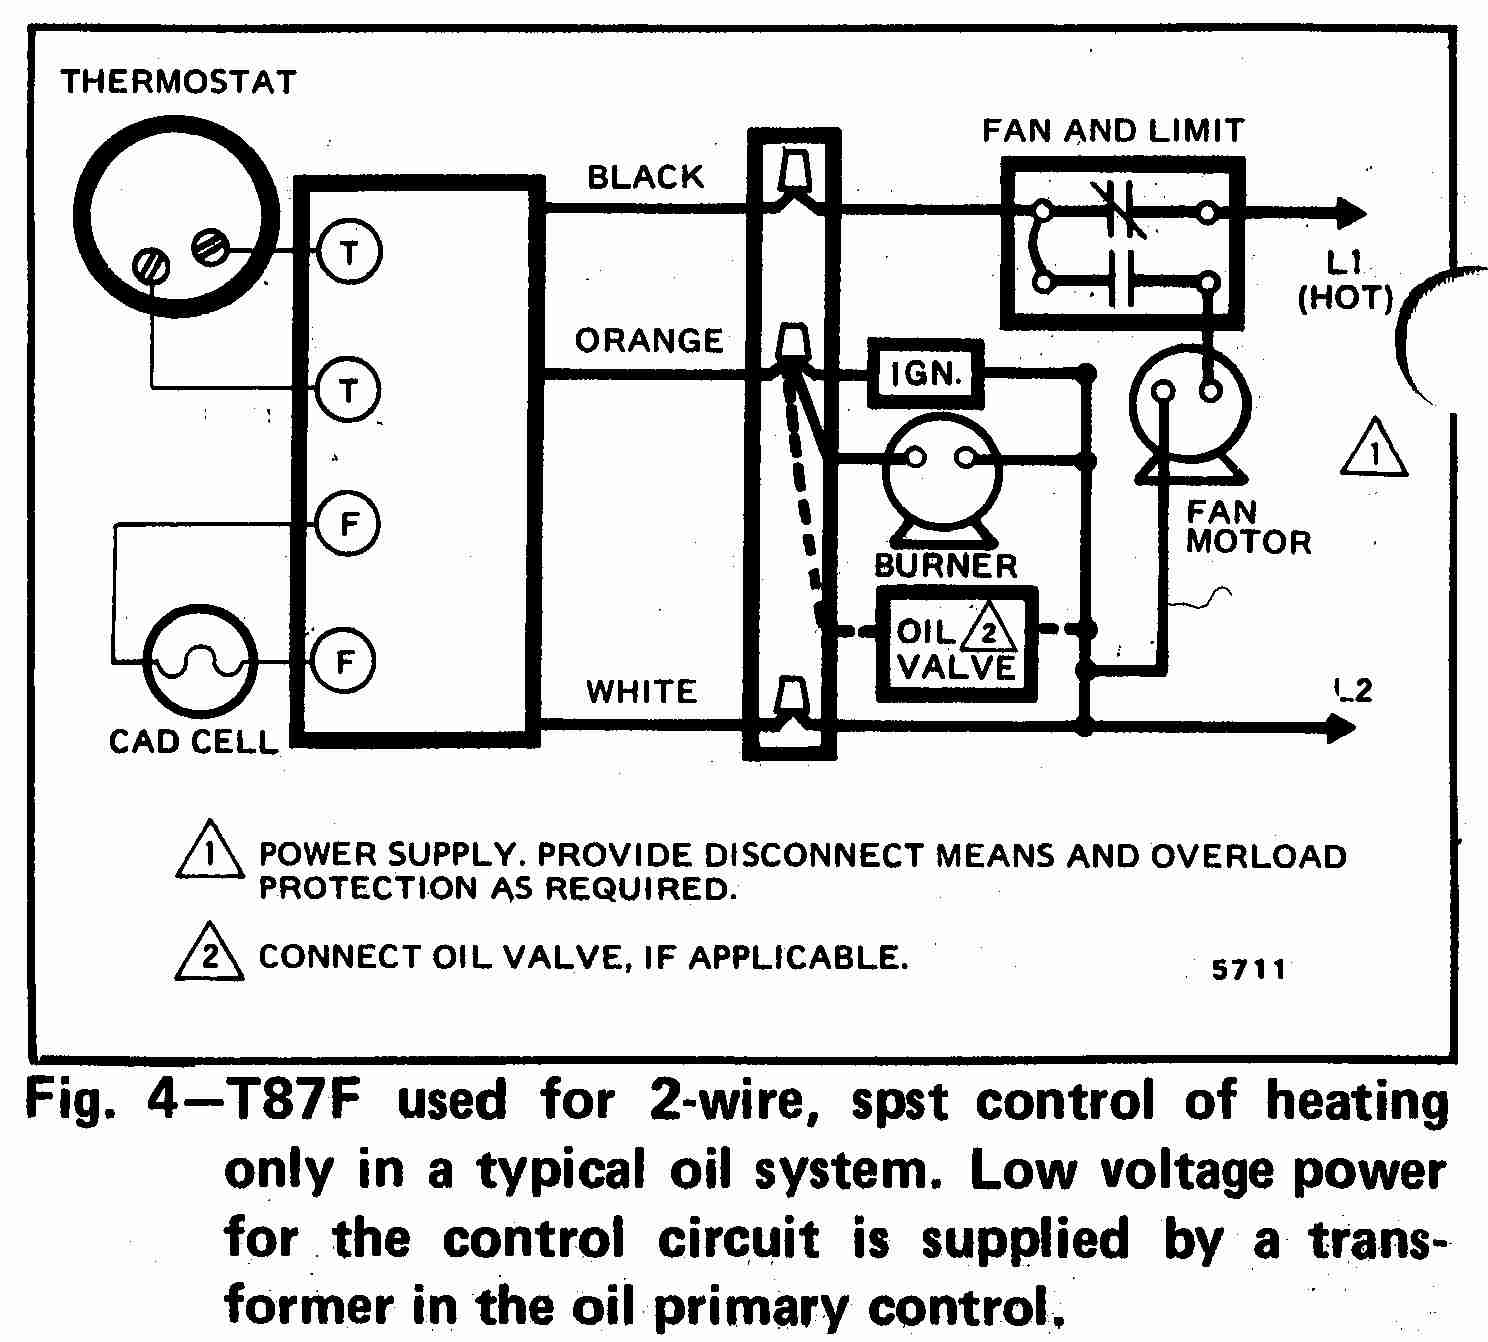 TT_T87F_0002_2W_DJF room thermostat wiring diagrams for hvac systems honeywell rth2300 wiring diagram at edmiracle.co